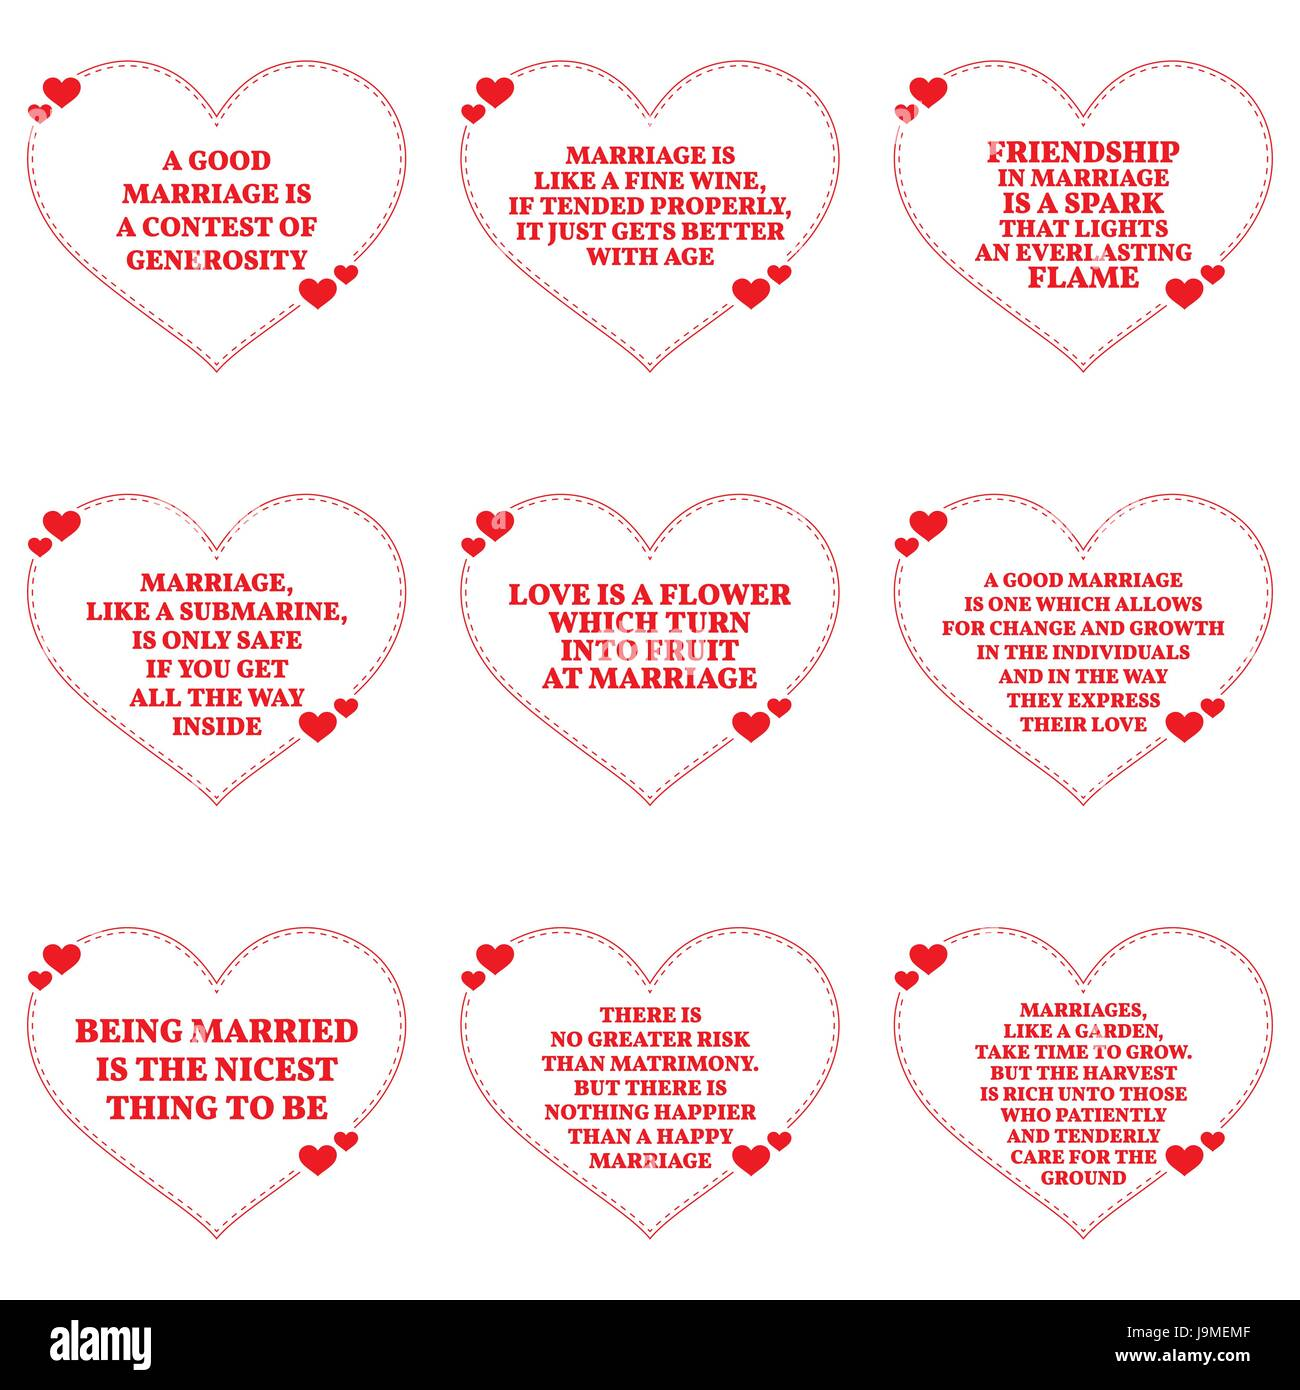 Just Married Quotes Set Of Quotes About Love And Marriage Over White Background